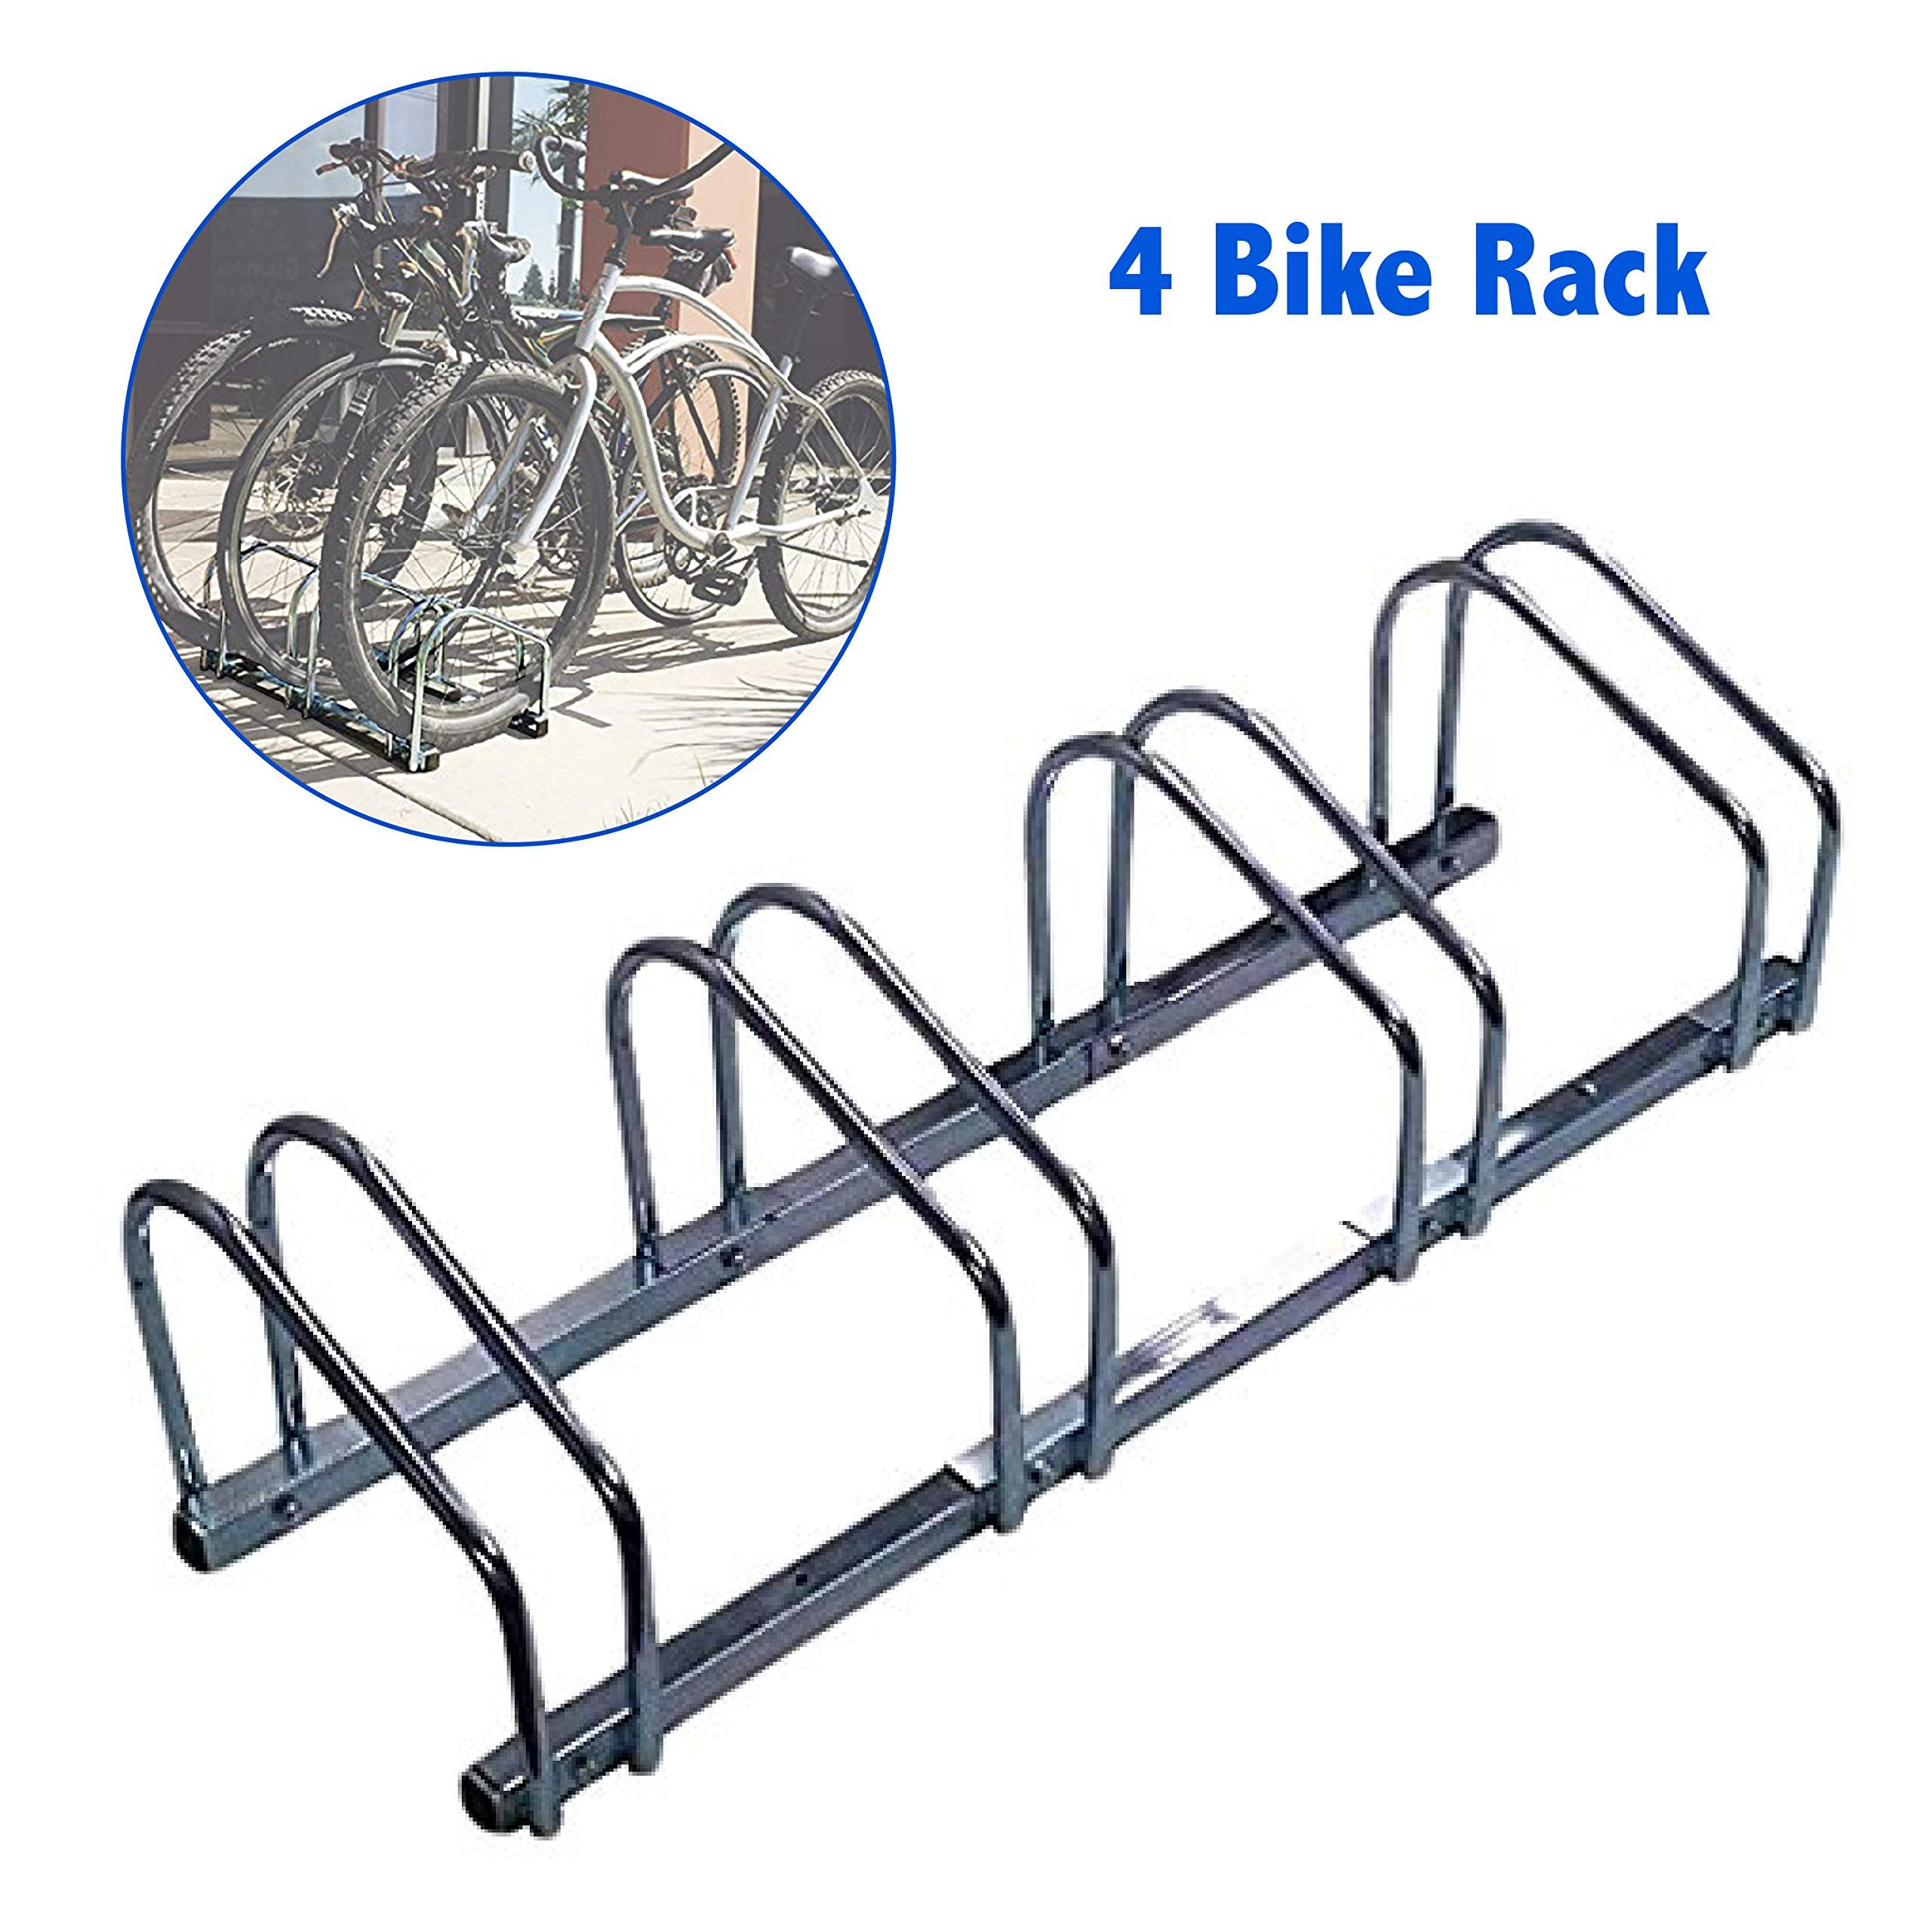 Pin on Cycle Car Racks and Transport Storage